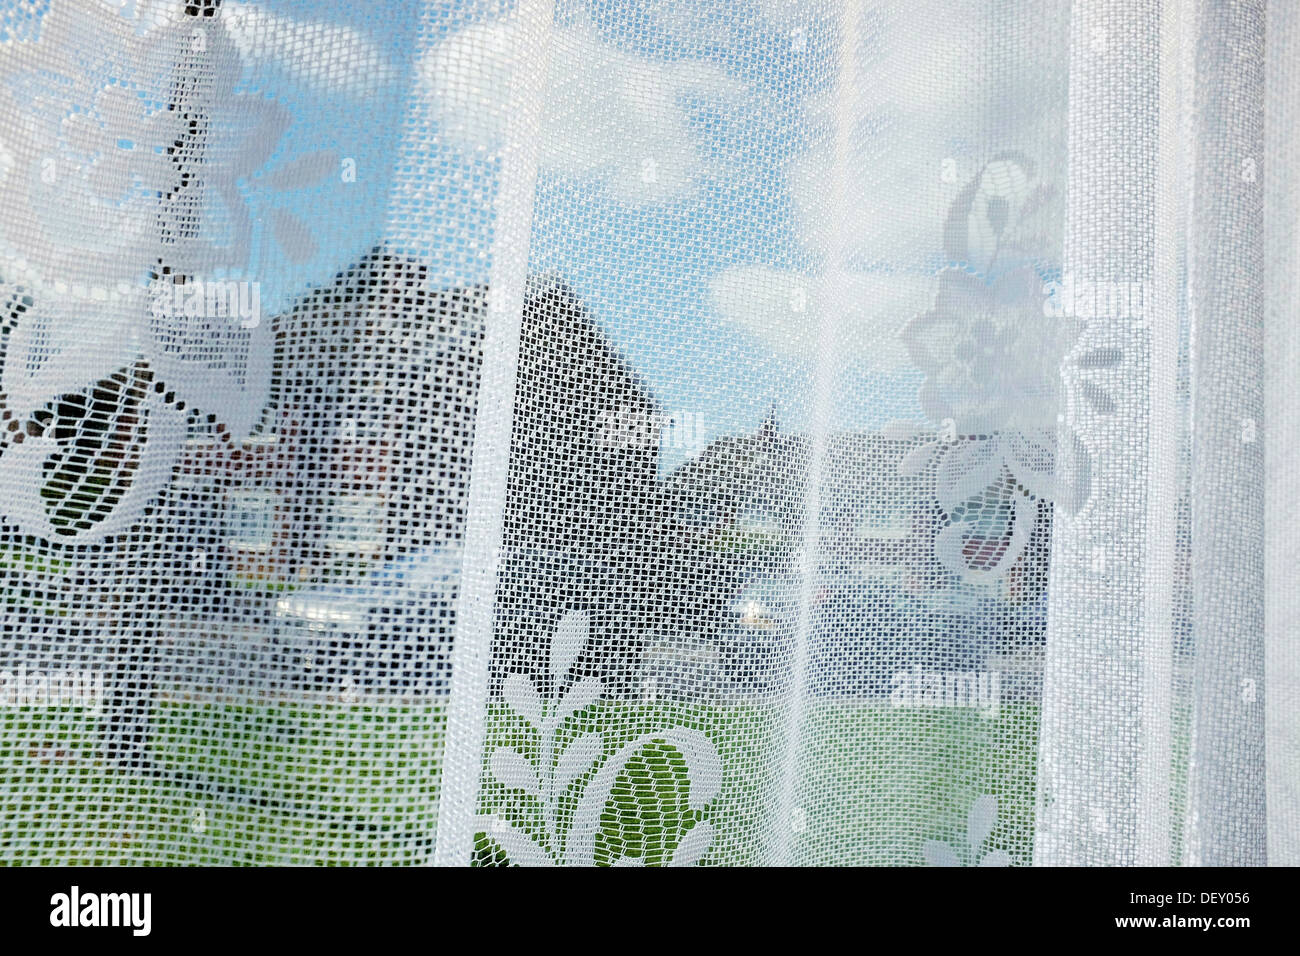 Suburban scene through net curtains. - Stock Image